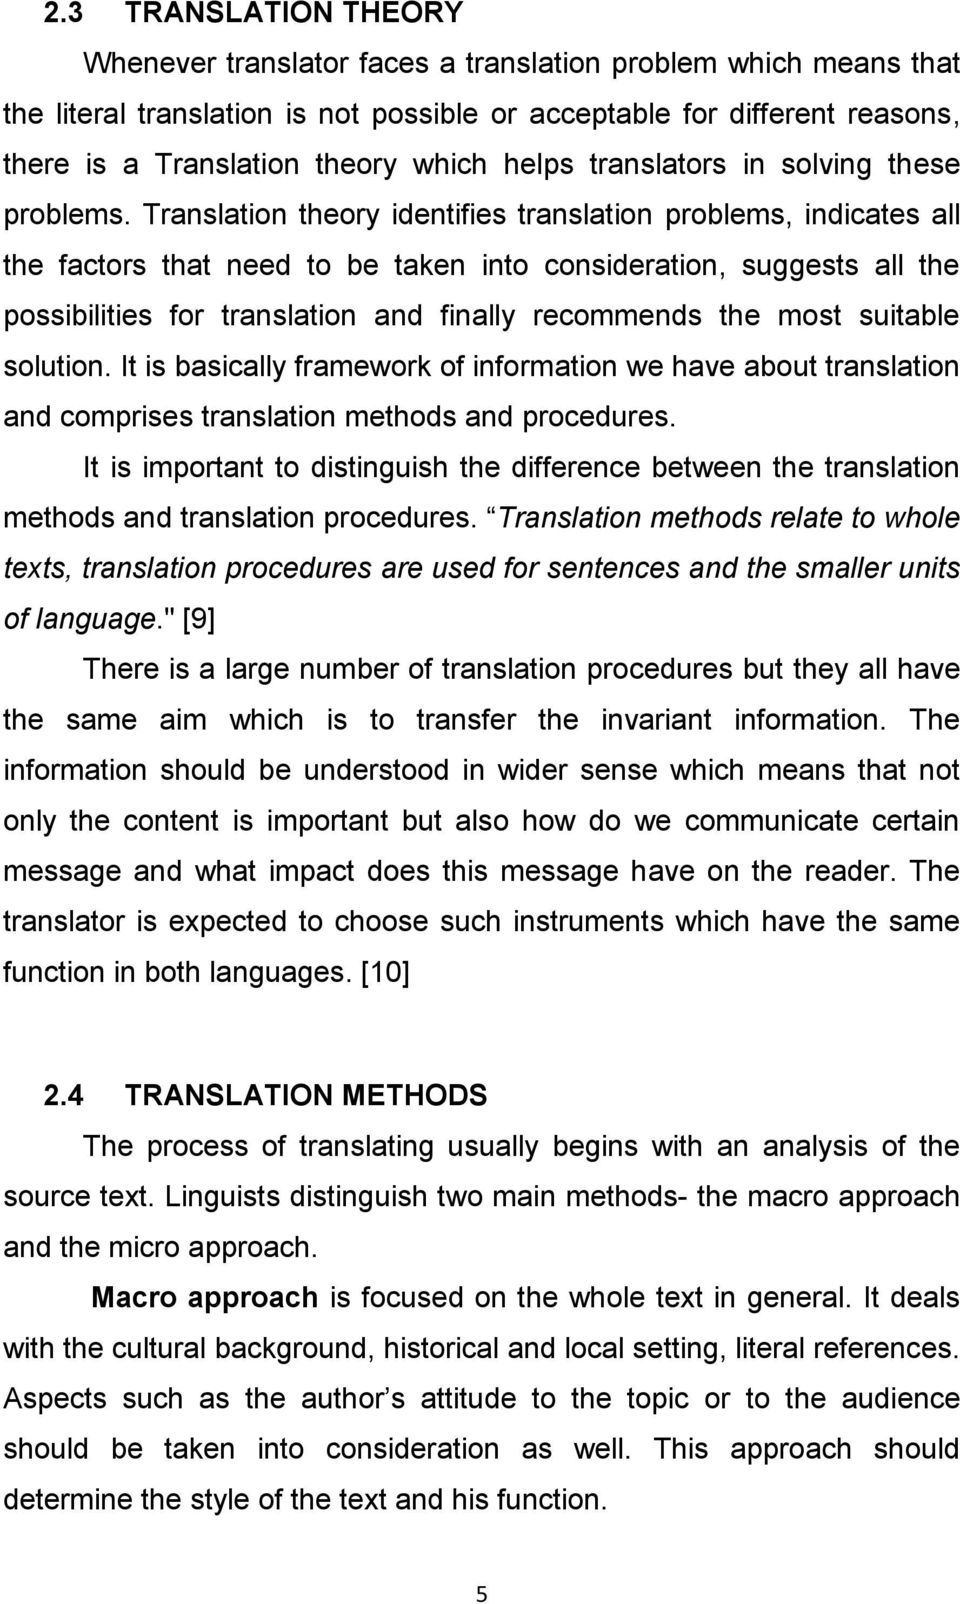 Translation theory identifies translation problems, indicates all the factors that need to be taken into consideration, suggests all the possibilities for translation and finally recommends the most